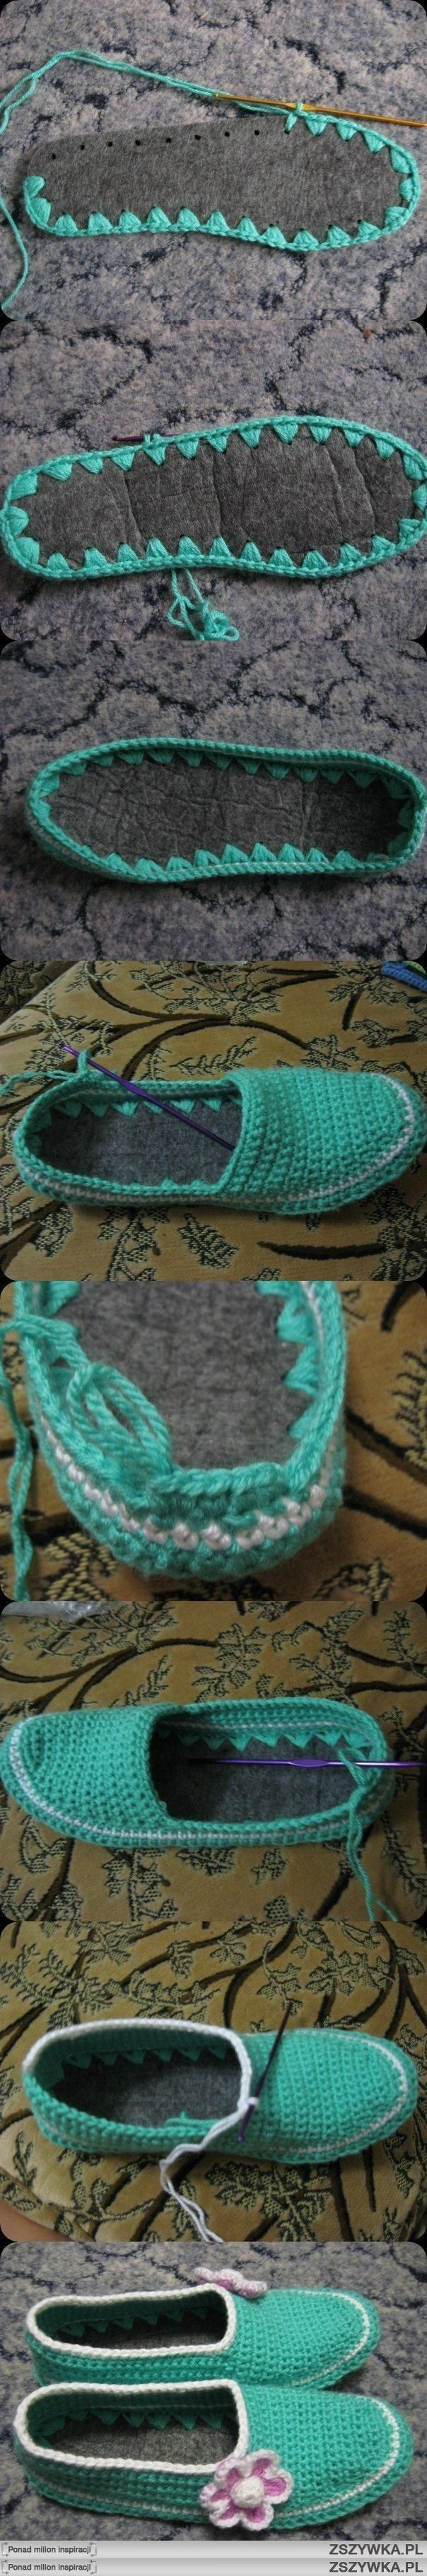 "crochet slippers, I have to try these!!! I know a little Bug that may love them..... [   ""Crocheted slippers with a thick felt sole."",   ""Great visual tutorial for slipper/shoes with felt soles."",   ""kapcie na DIY - Zszywka."",   ""Pantuflas crochet - Very cool! Love this idea"",   ""DIY crochet slippers, previous Pinner said ""I have to try these! I know a little Bug that may love them."",   ""Crochet slipper with an insole - I like this idea because my feet always hurt when I wear crochet…"